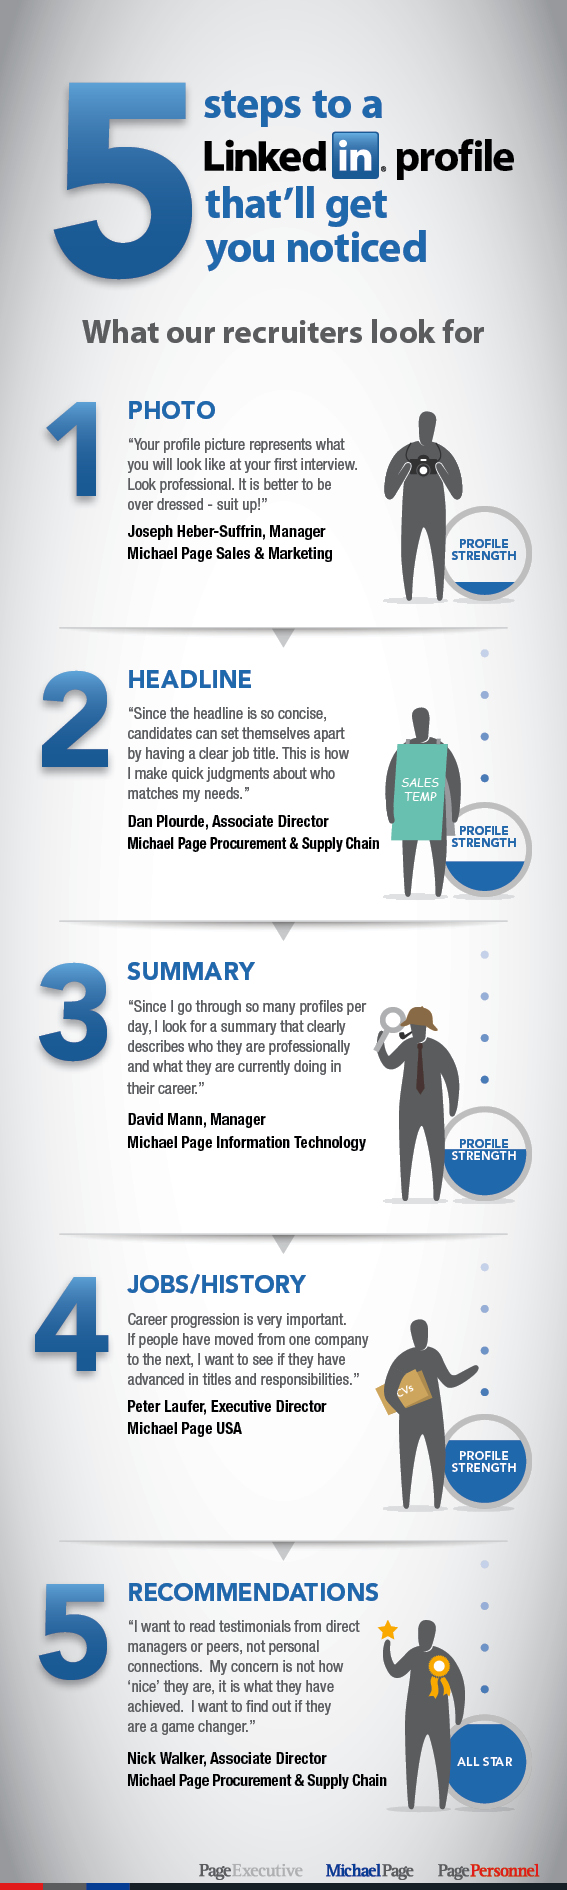 Steps To A Linkedin Profile ThatLl Get You Noticed Infographic